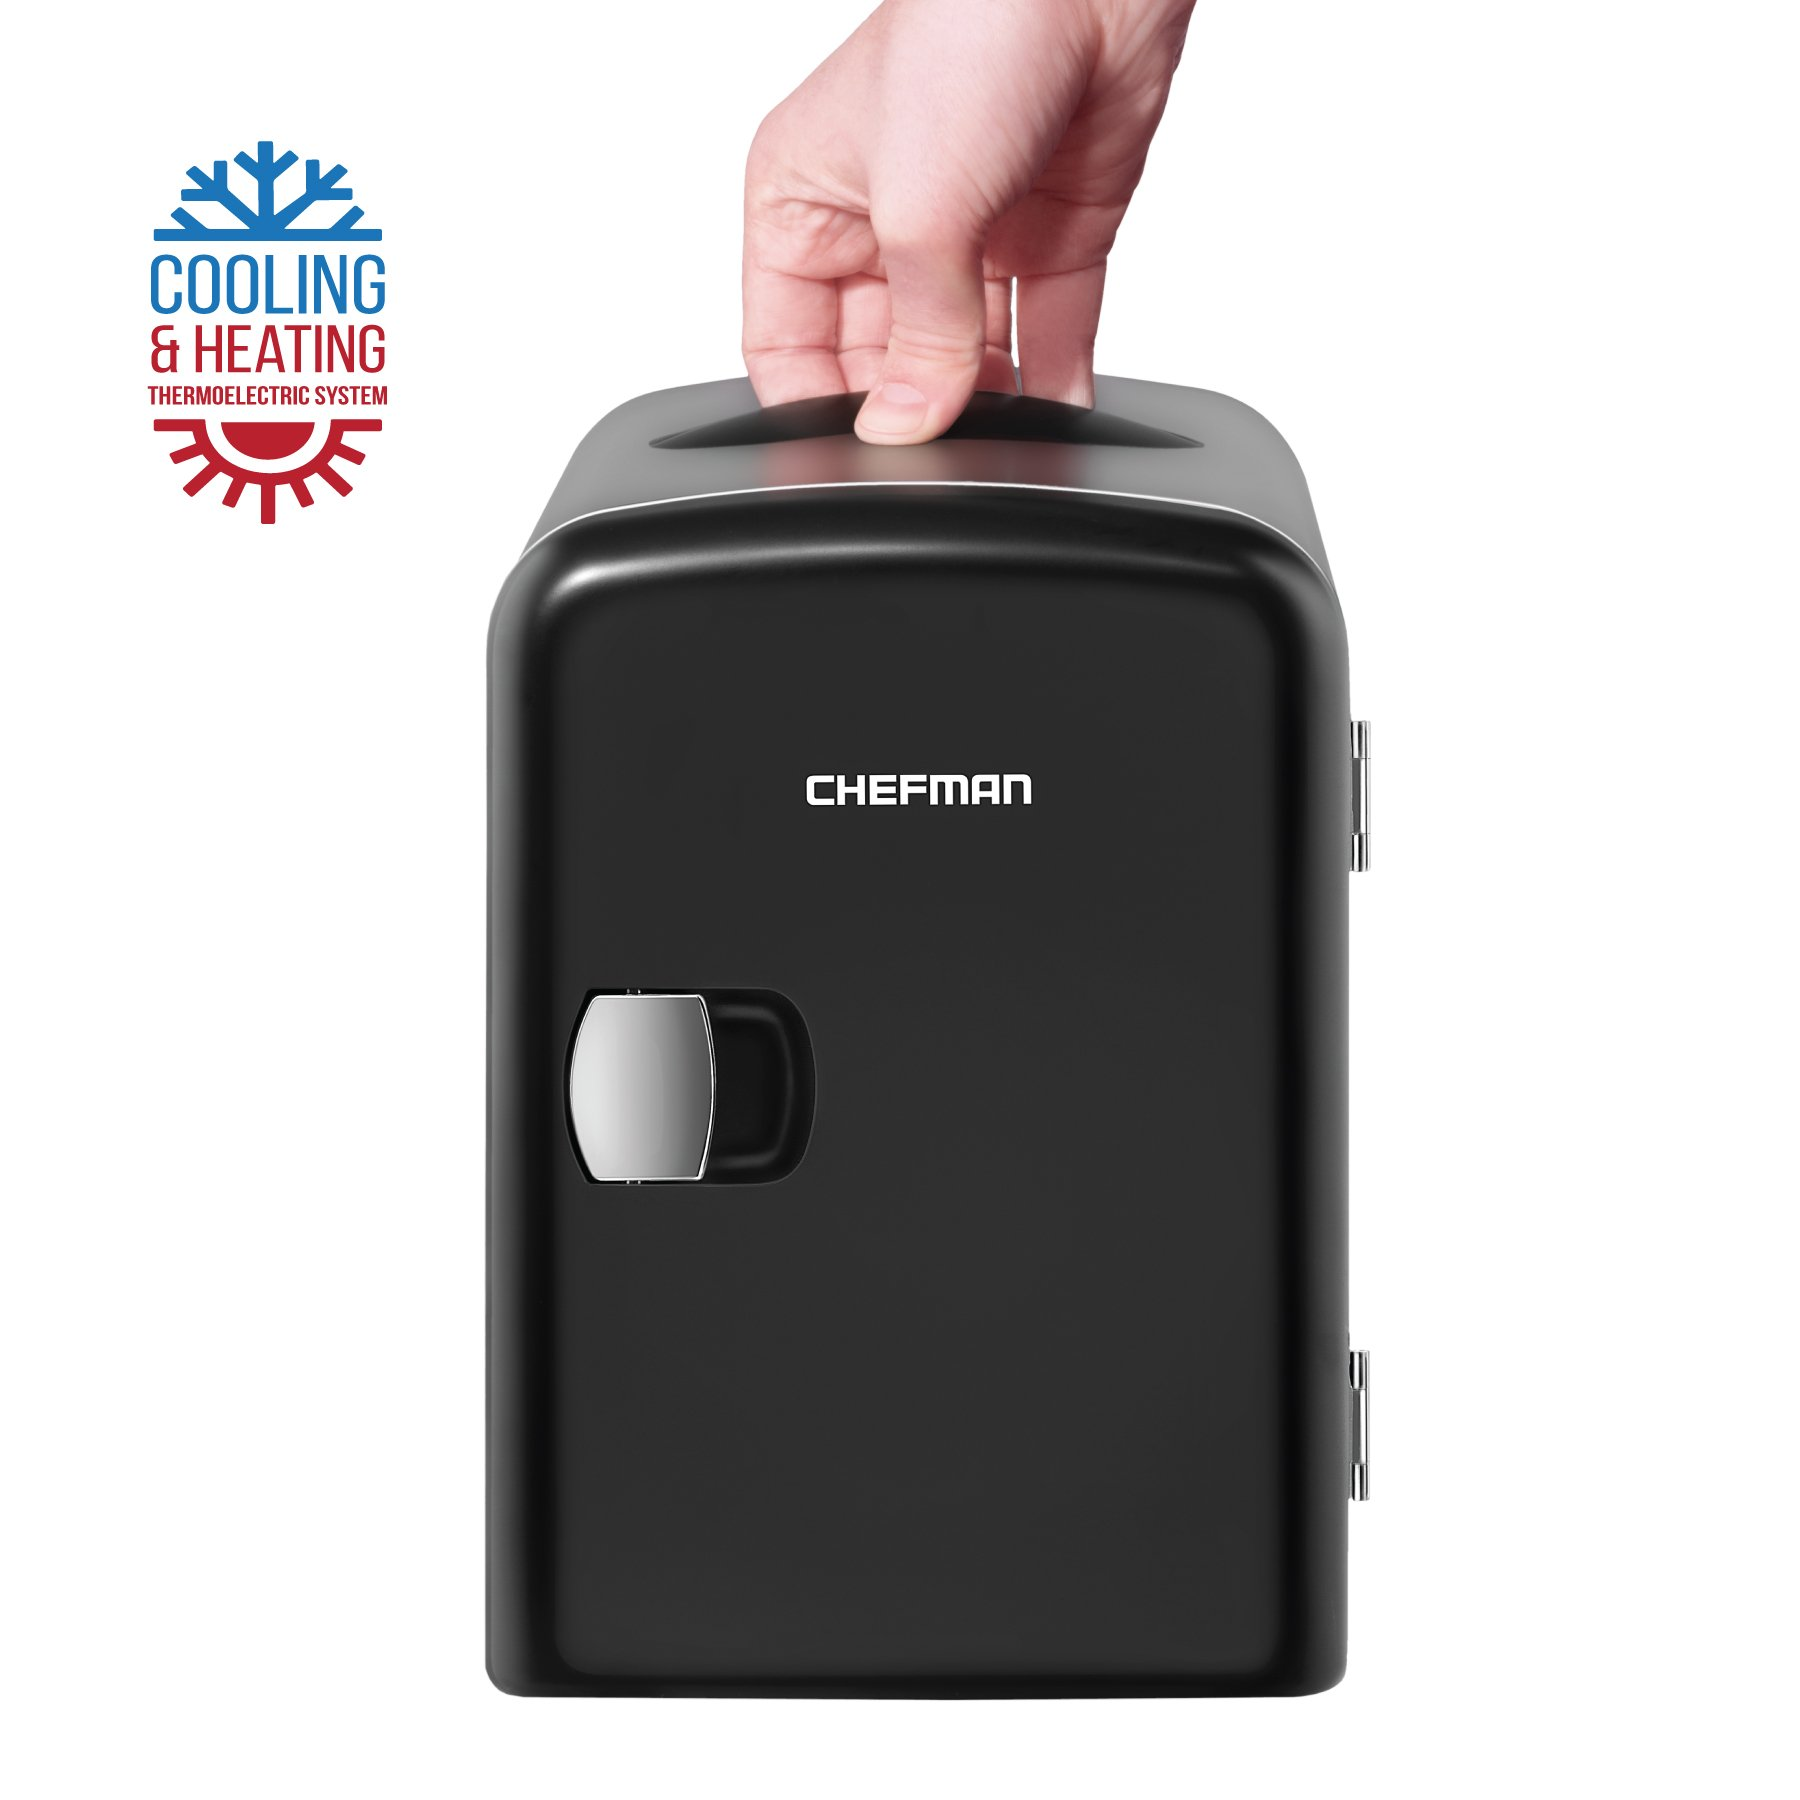 Chefman Mini Portable Compact Personal Fridge Cools & Heats, 4 Liter Capacity Chills Six 12 oz Cans, 100% Freon-Free & Eco Friendly, Includes Plugs for Home Outlet & 12V Car Charger, Black